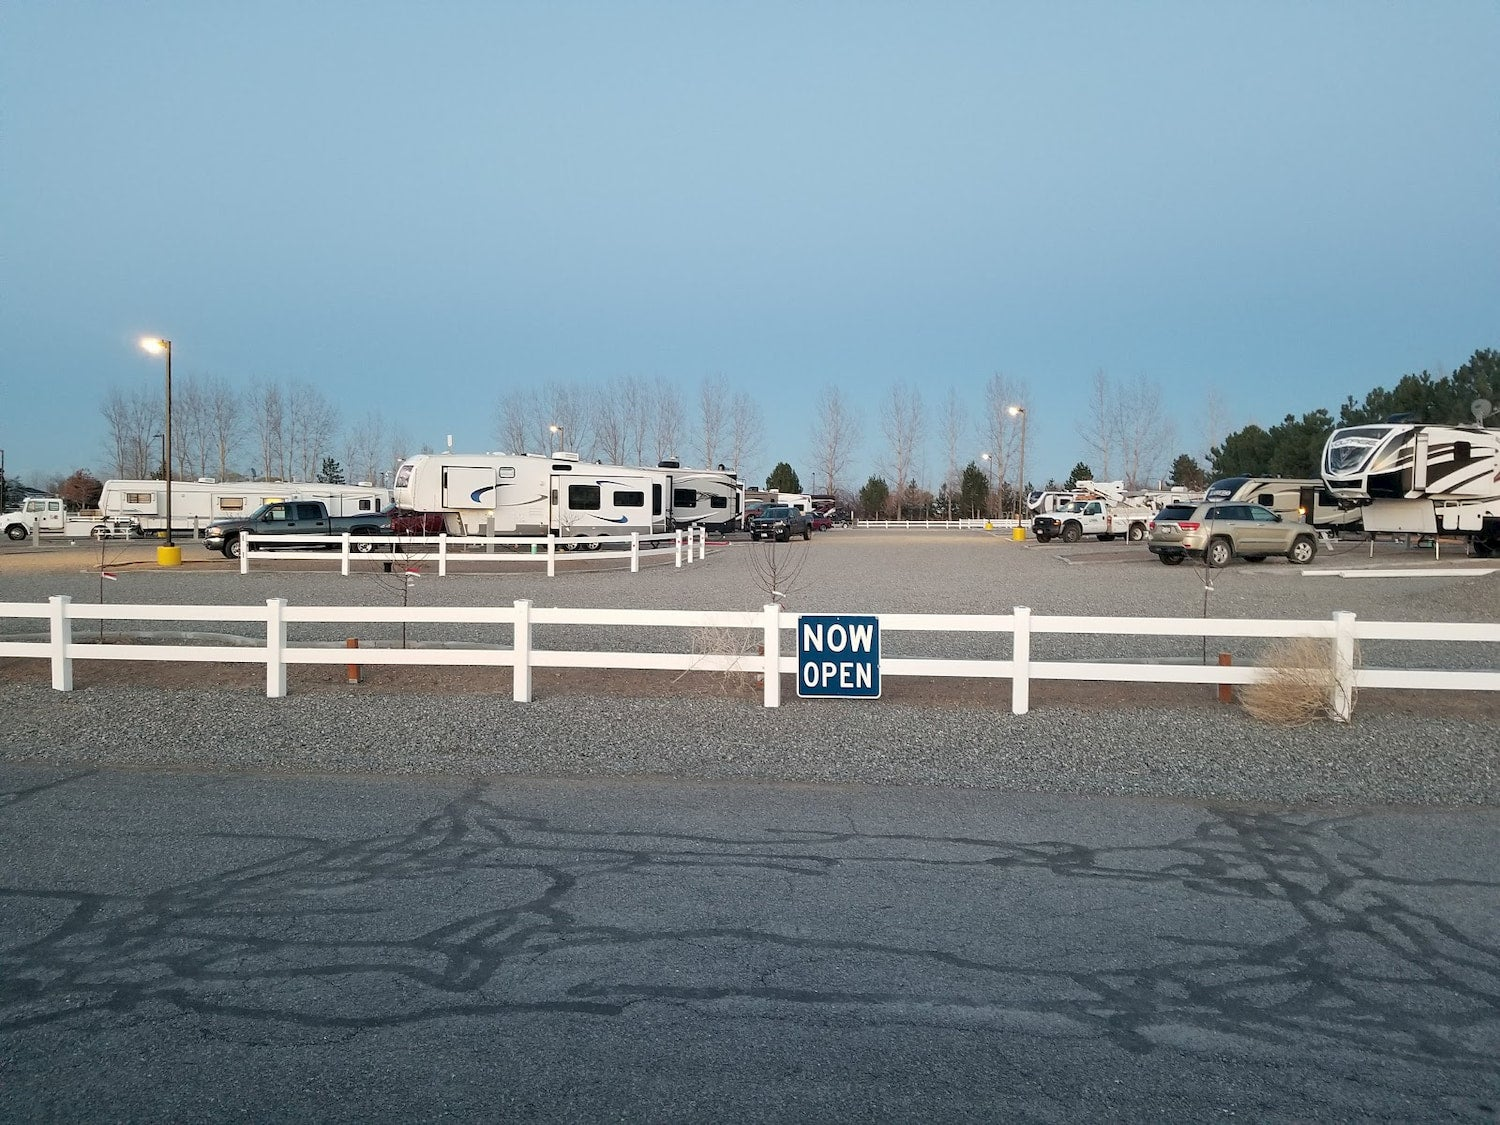 rows of rvs parked at campground